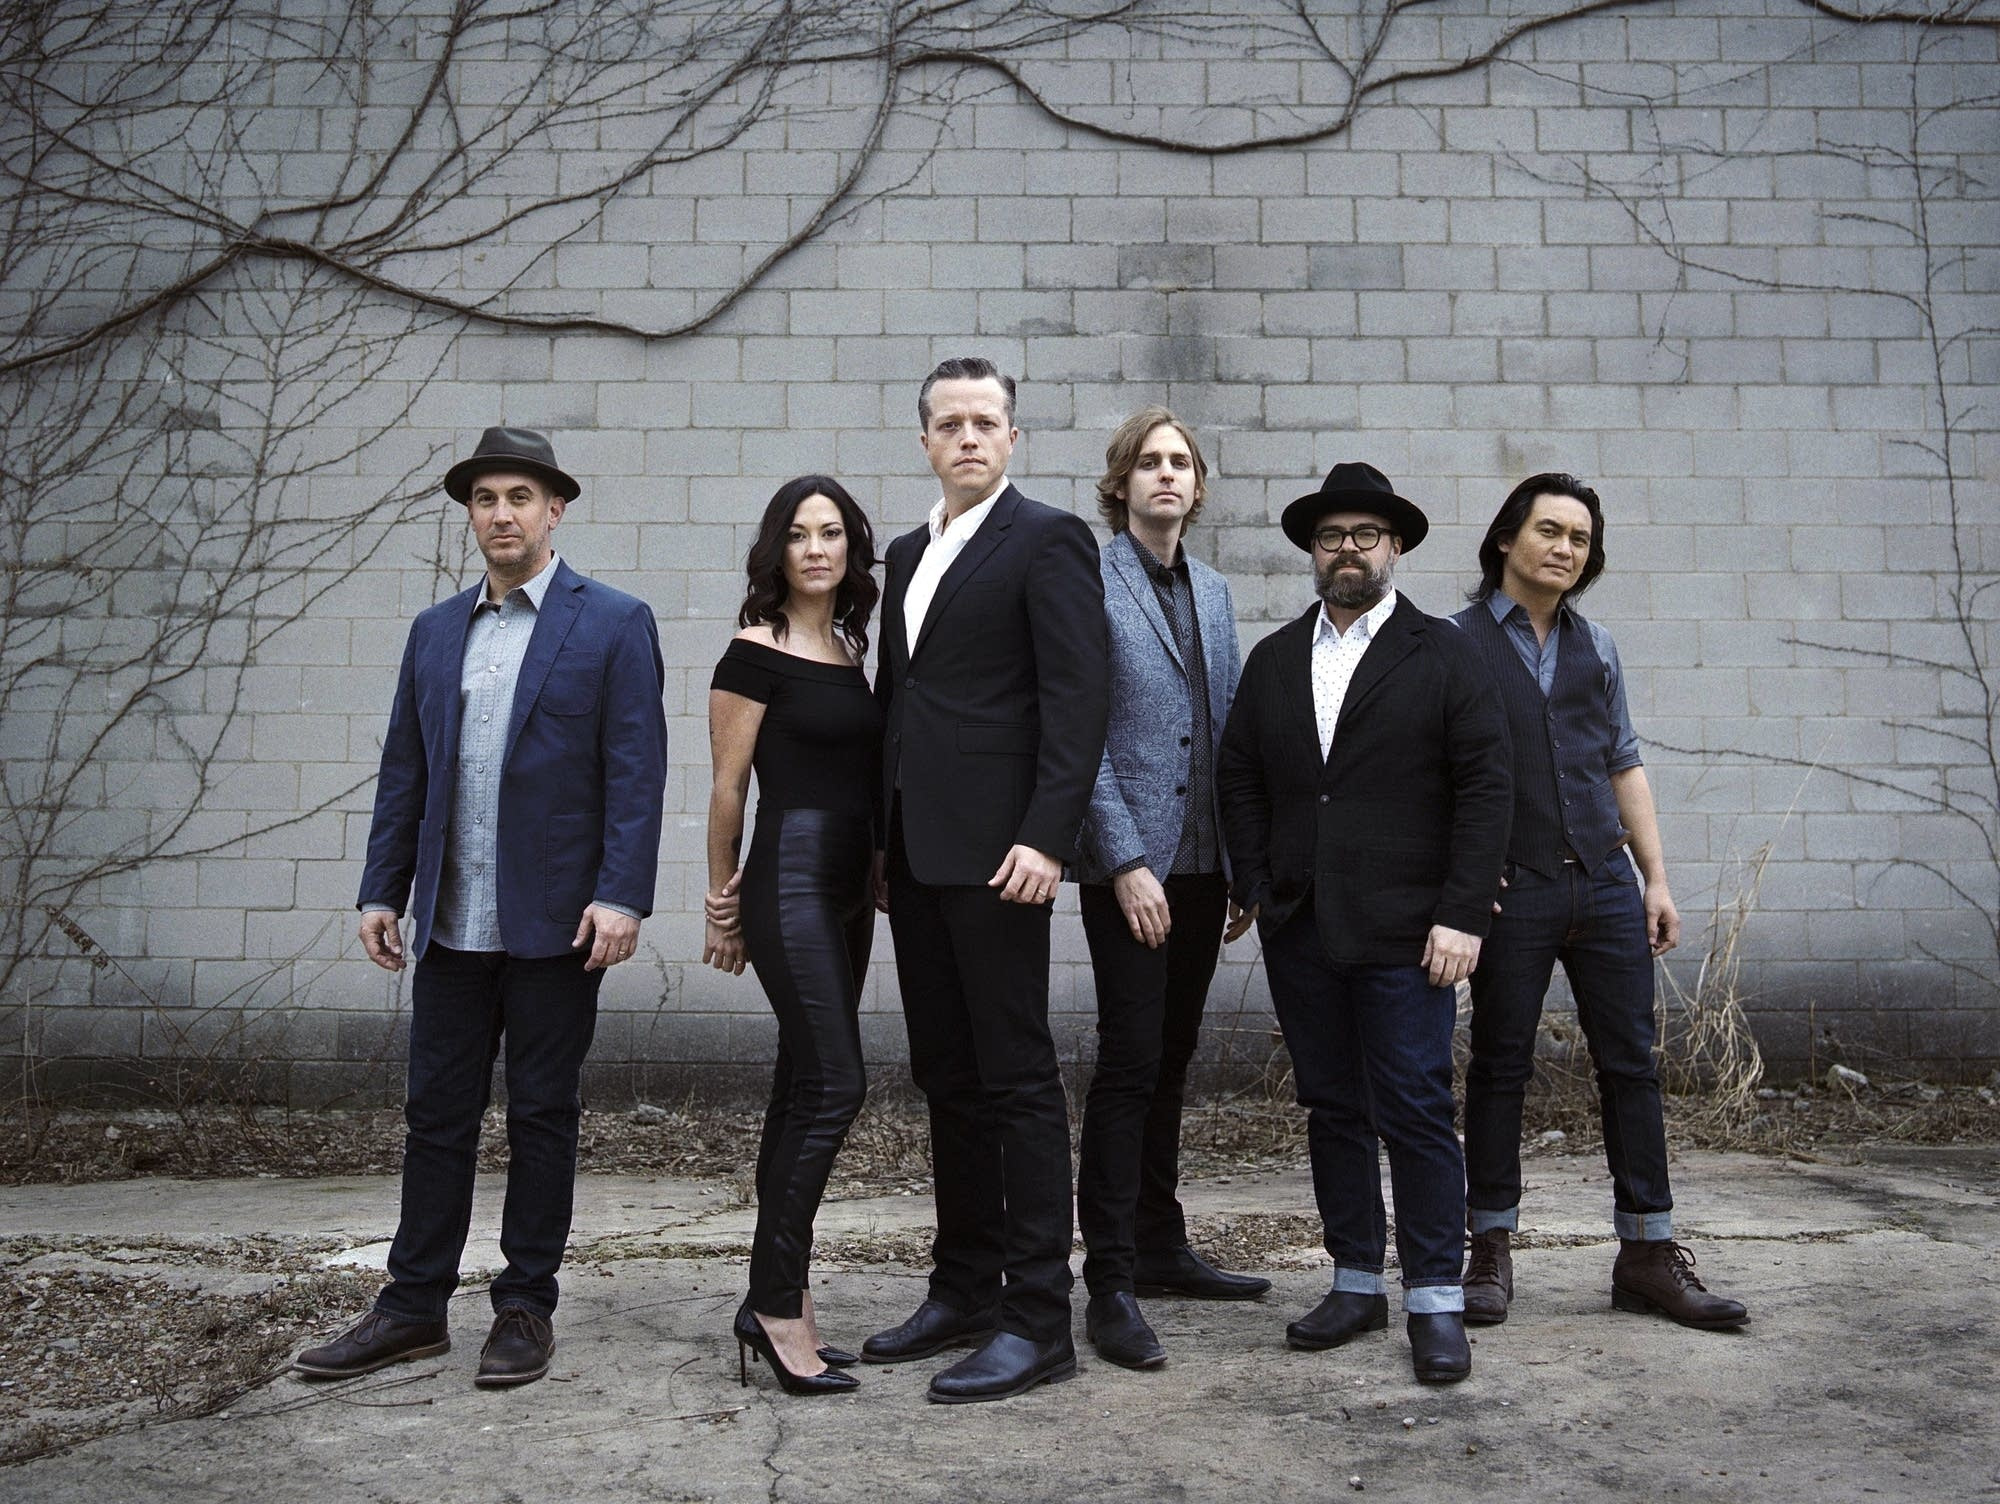 jason-isbell-and-the-400-unit.jpg